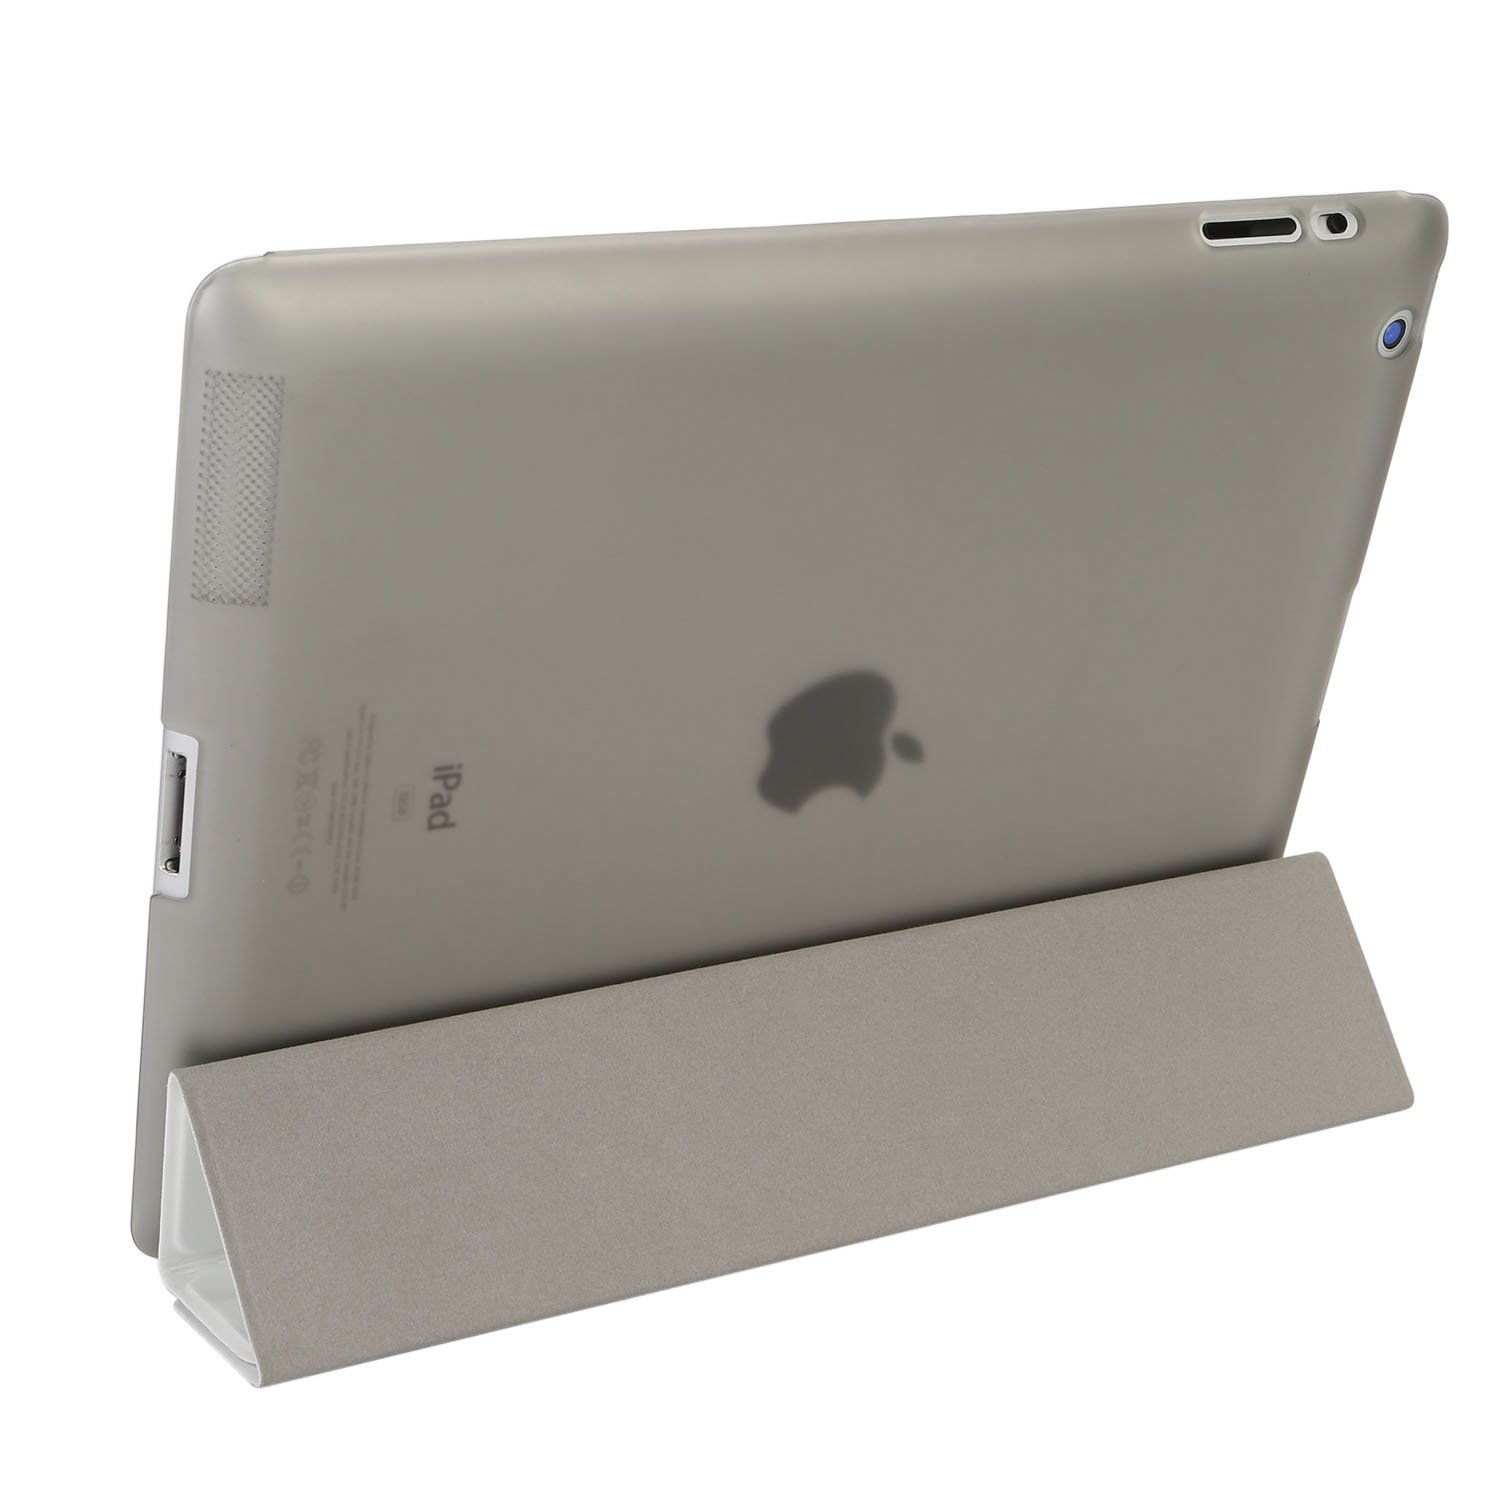 /Étui Bling Flip Smart Cover 360 /° en cuir pivotant pour iPad Air 2